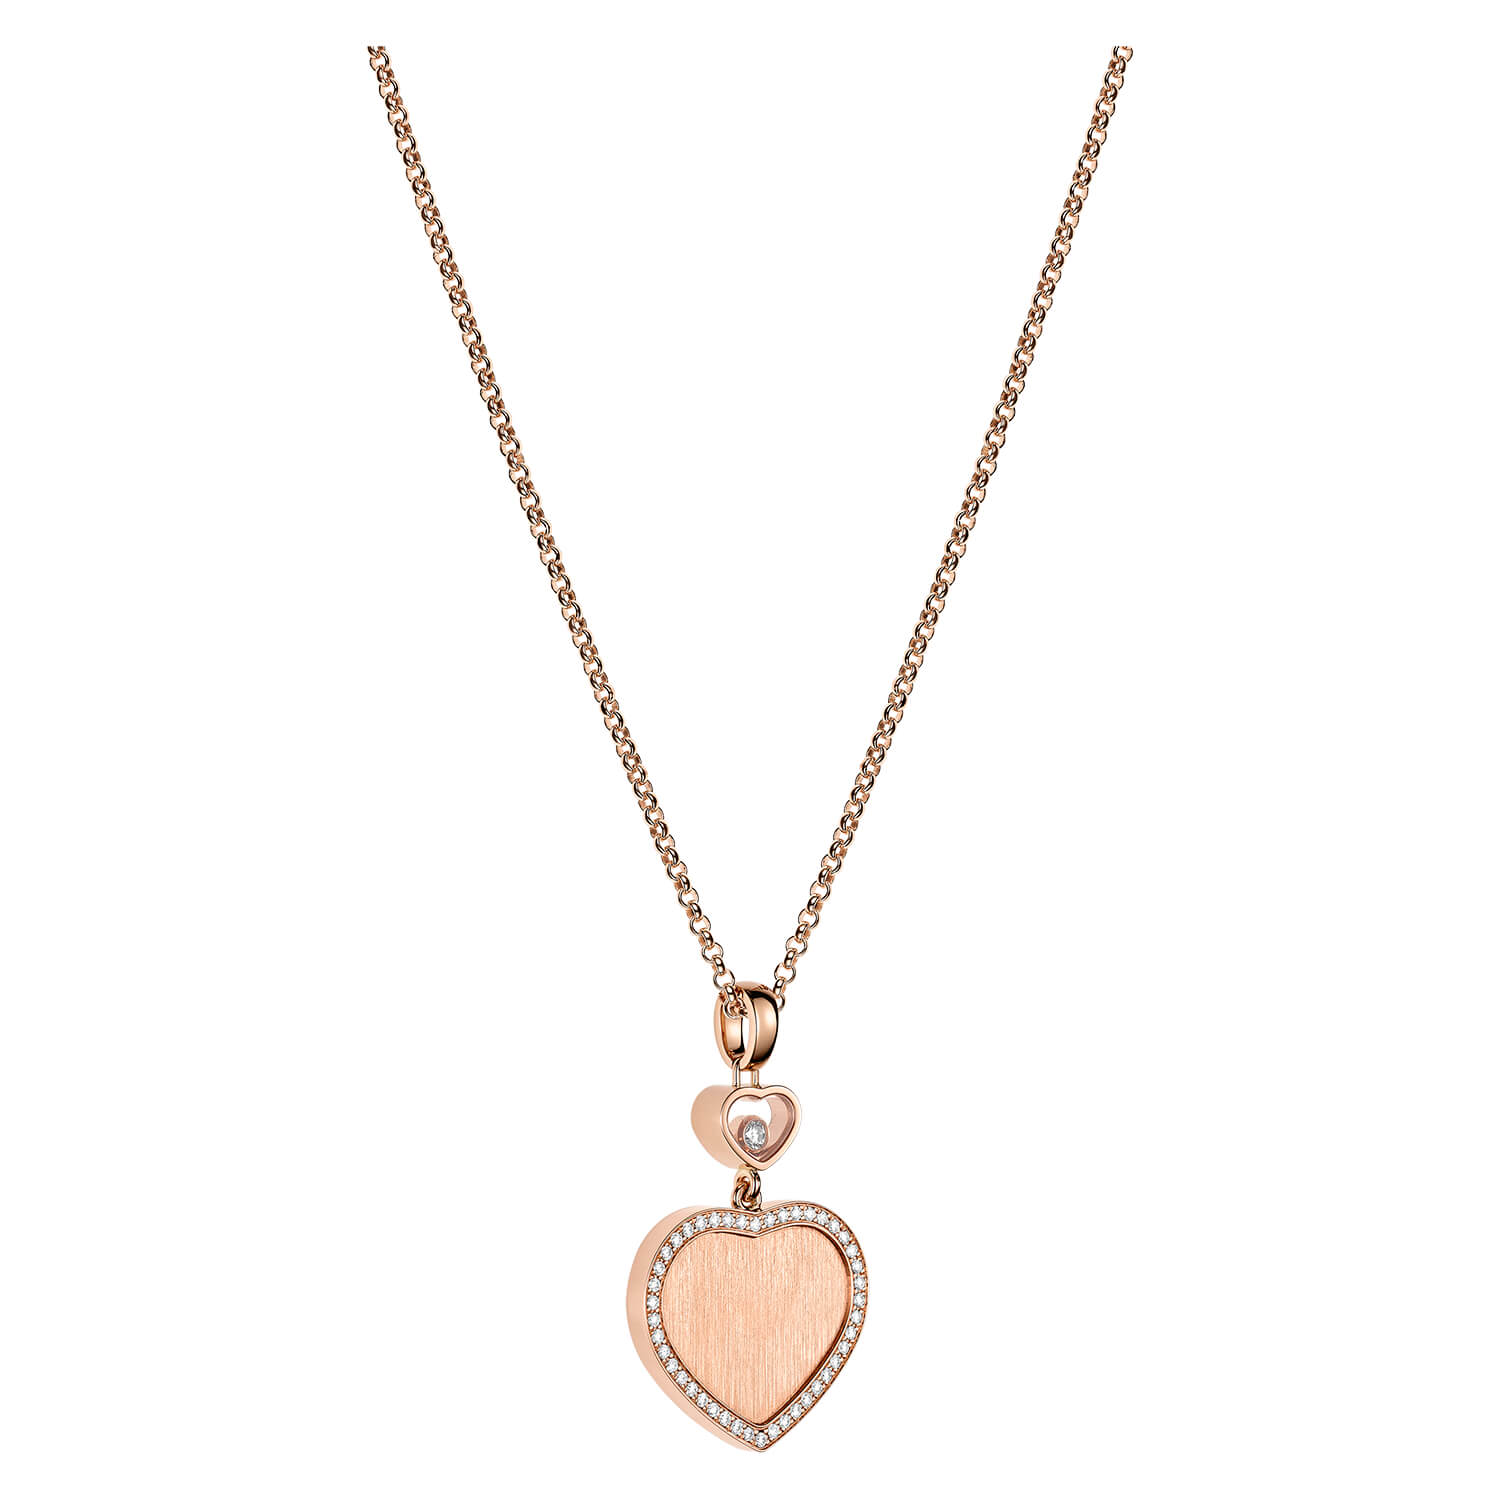 Chopard Limited Edition James Bond 007 Happy Hearts Diamond Pendant